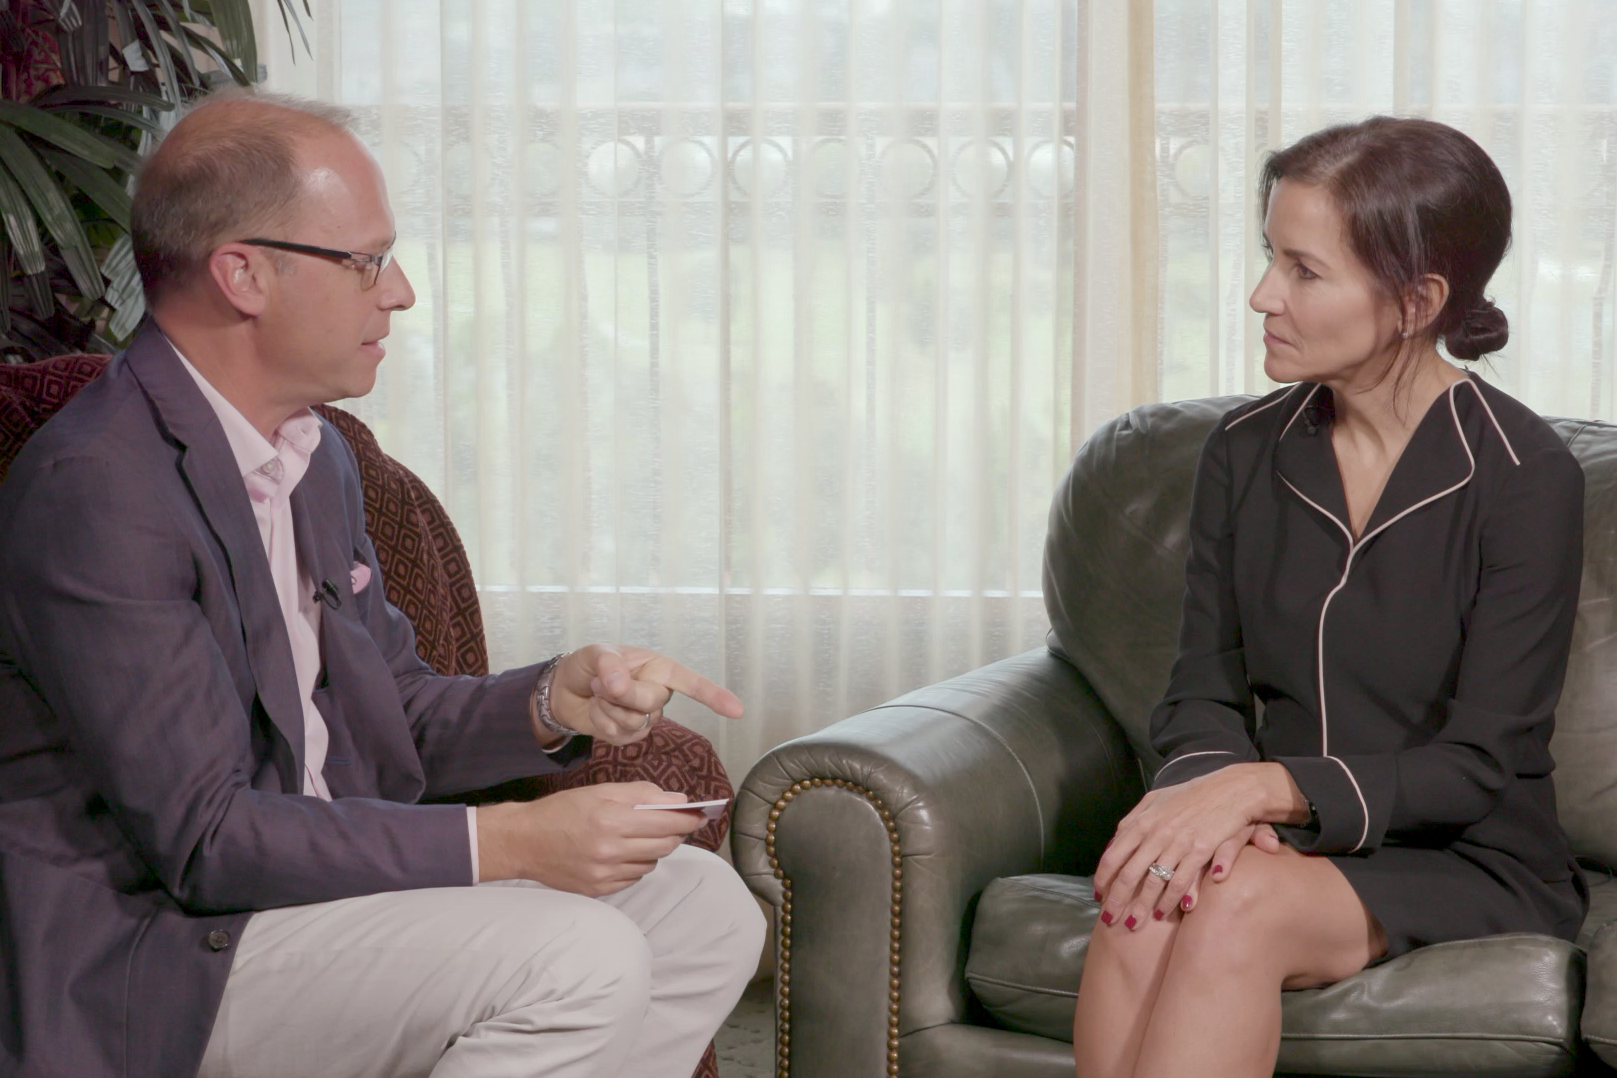 Salesforce CMO Stephanie Buscemi on the importance of 'walking the walk' when it comes to building trust